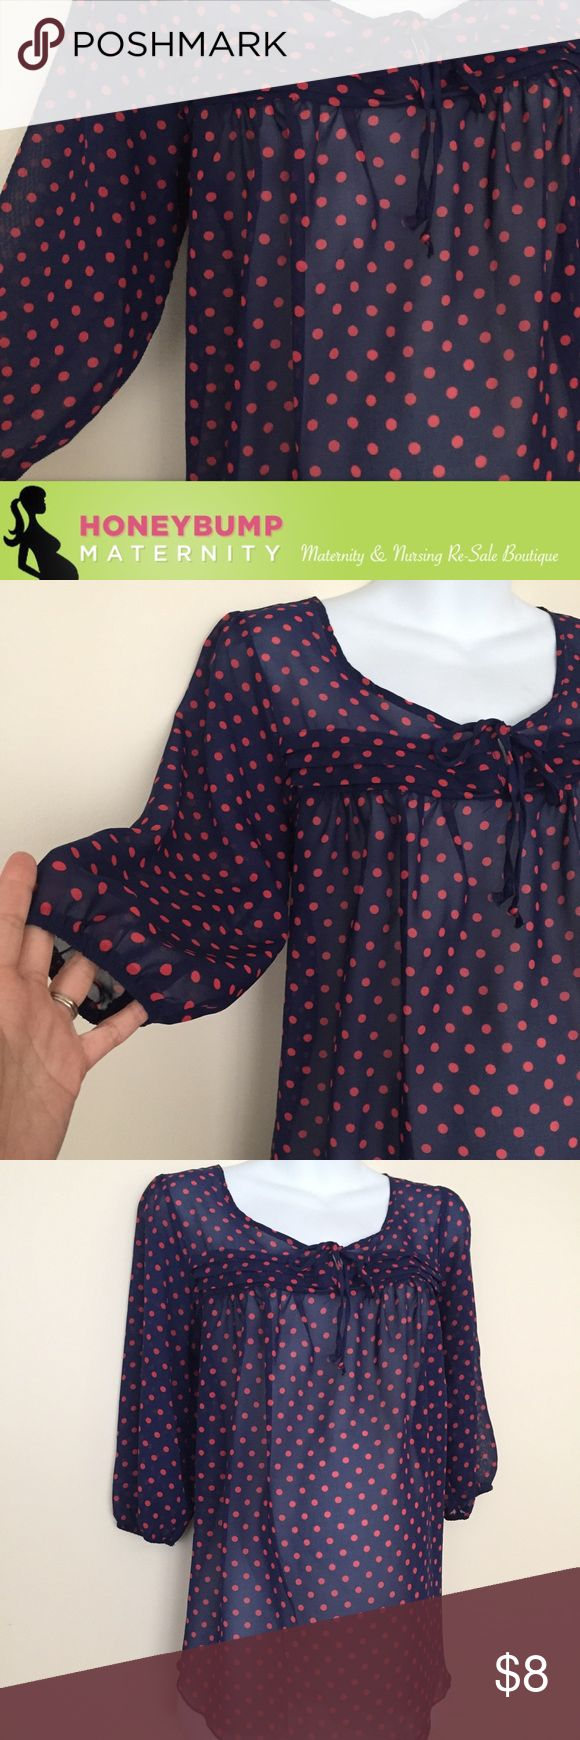 Maternity sheer top size extra large Perfect condition adorable maternity top in navy with orange like polkadots. Adorable with some shorts or skinny jeans and a Cami. Bundle for additional savings Tops